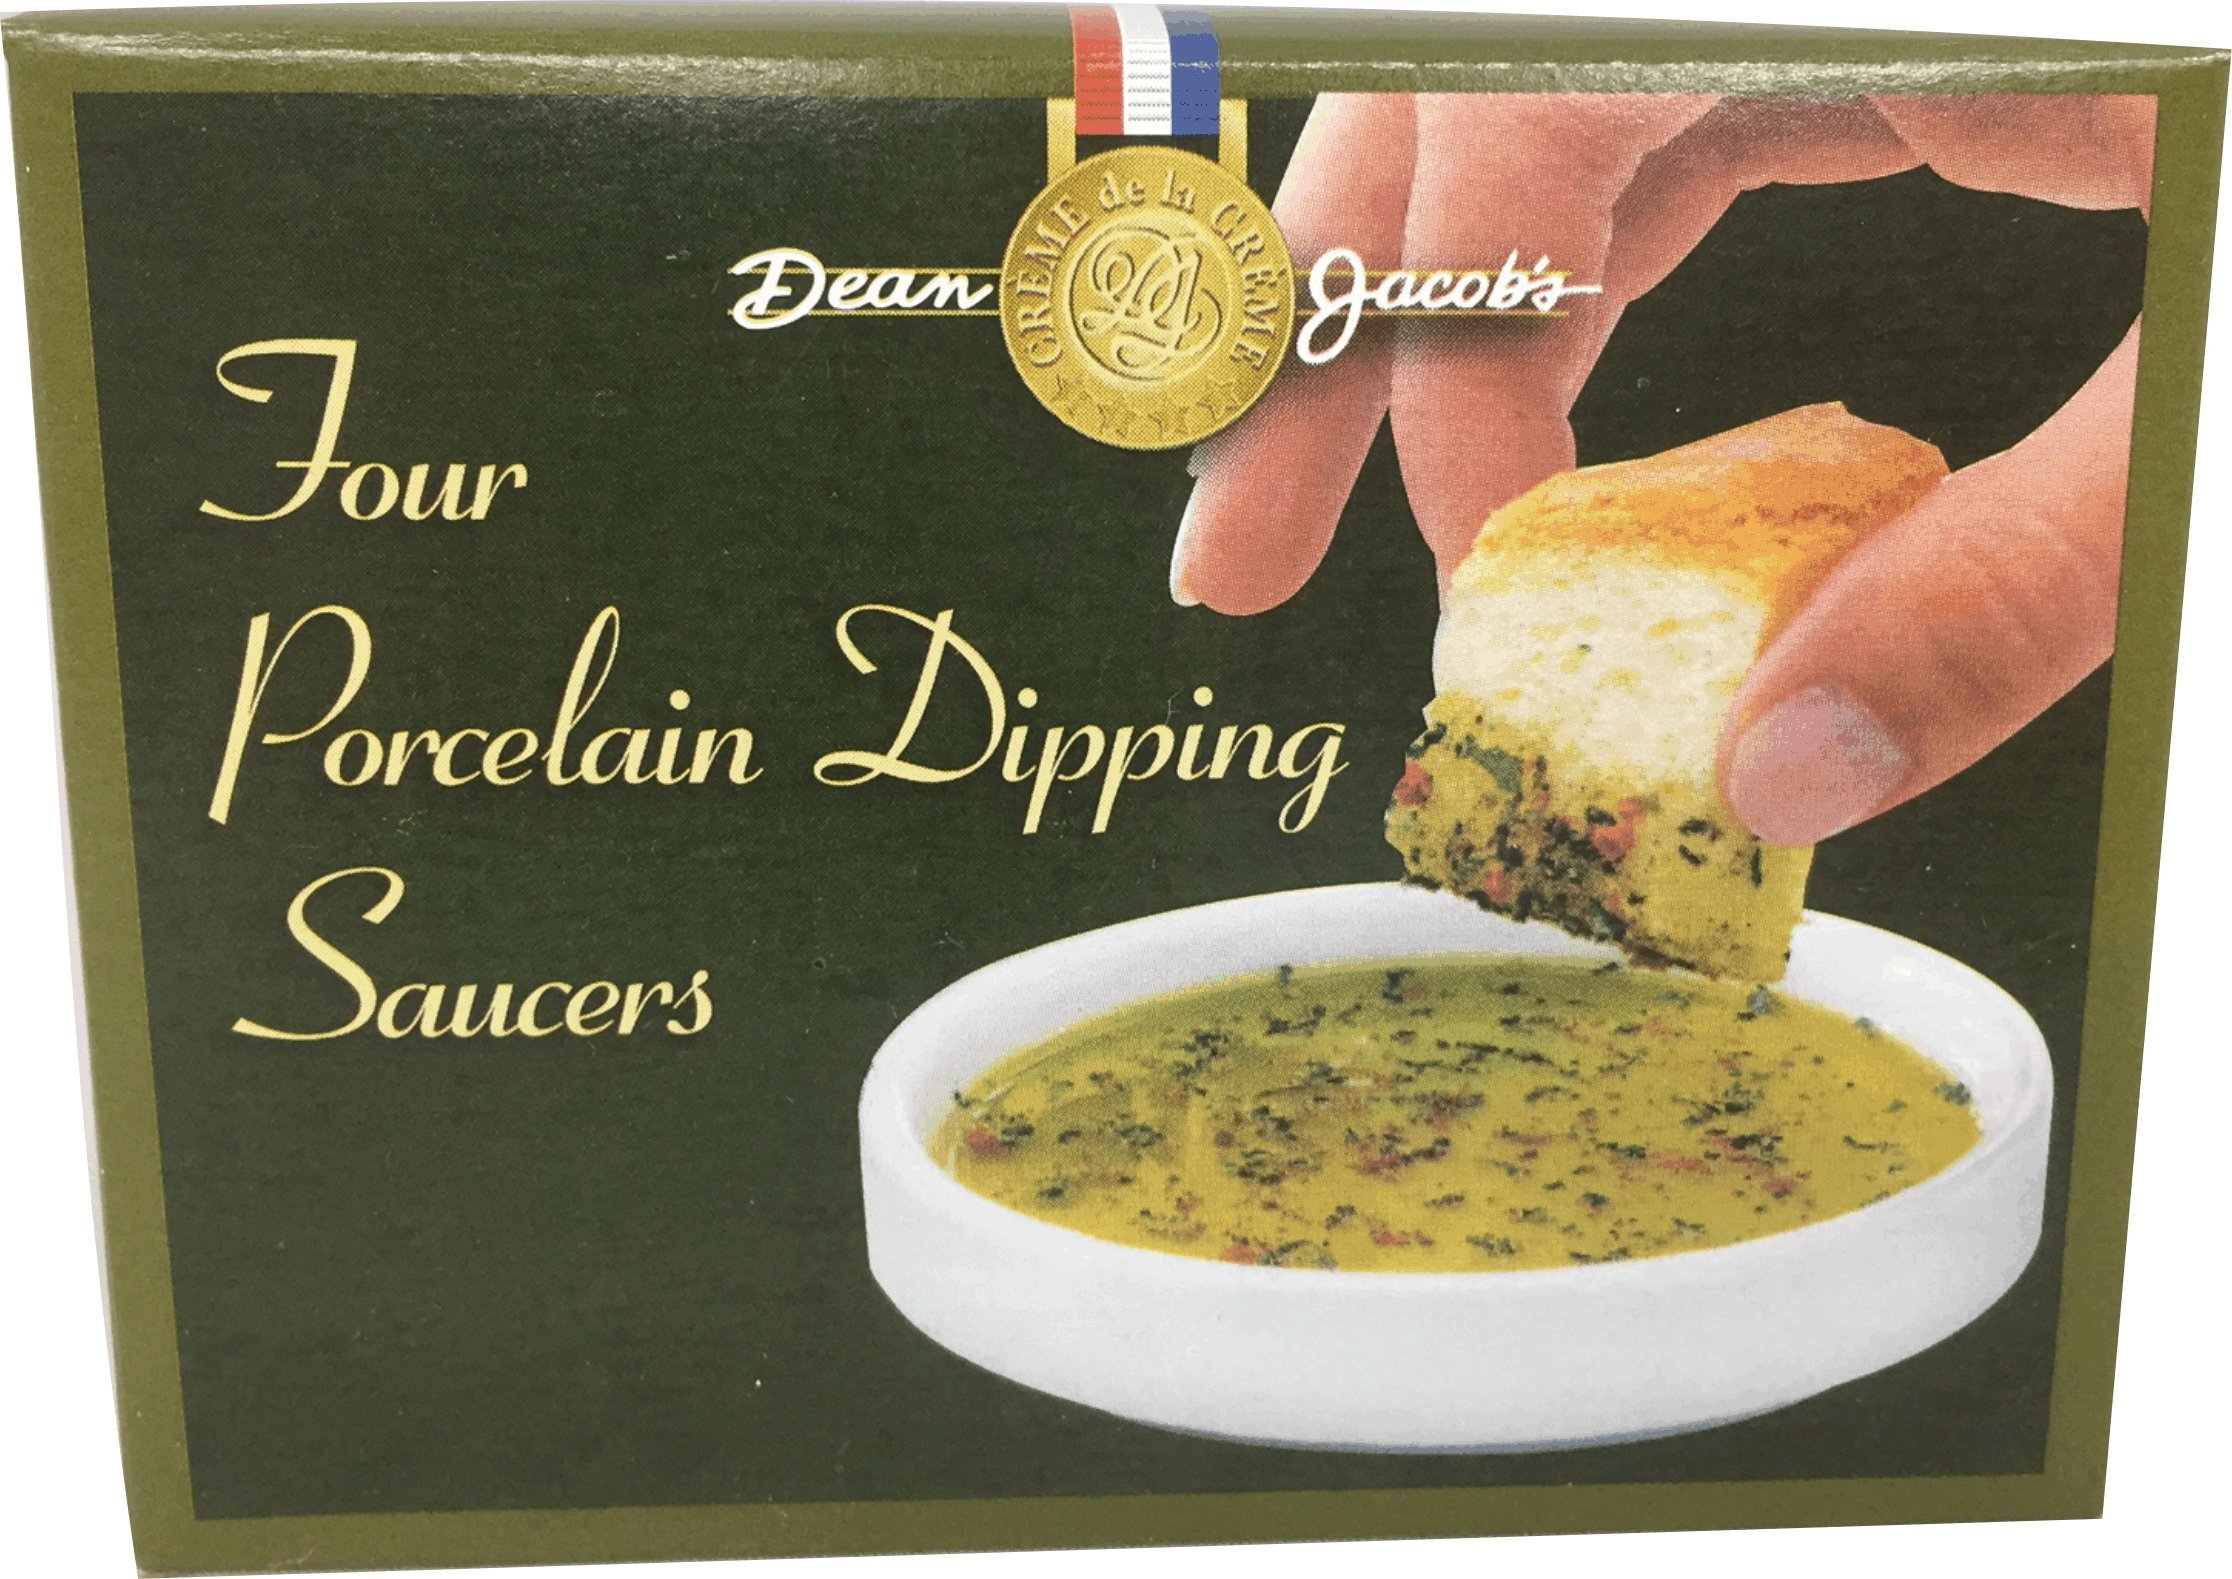 Dean Jacob's Dipping Saucers ~ Boxed Set of 4 by Dean Jacob's (Image #1)